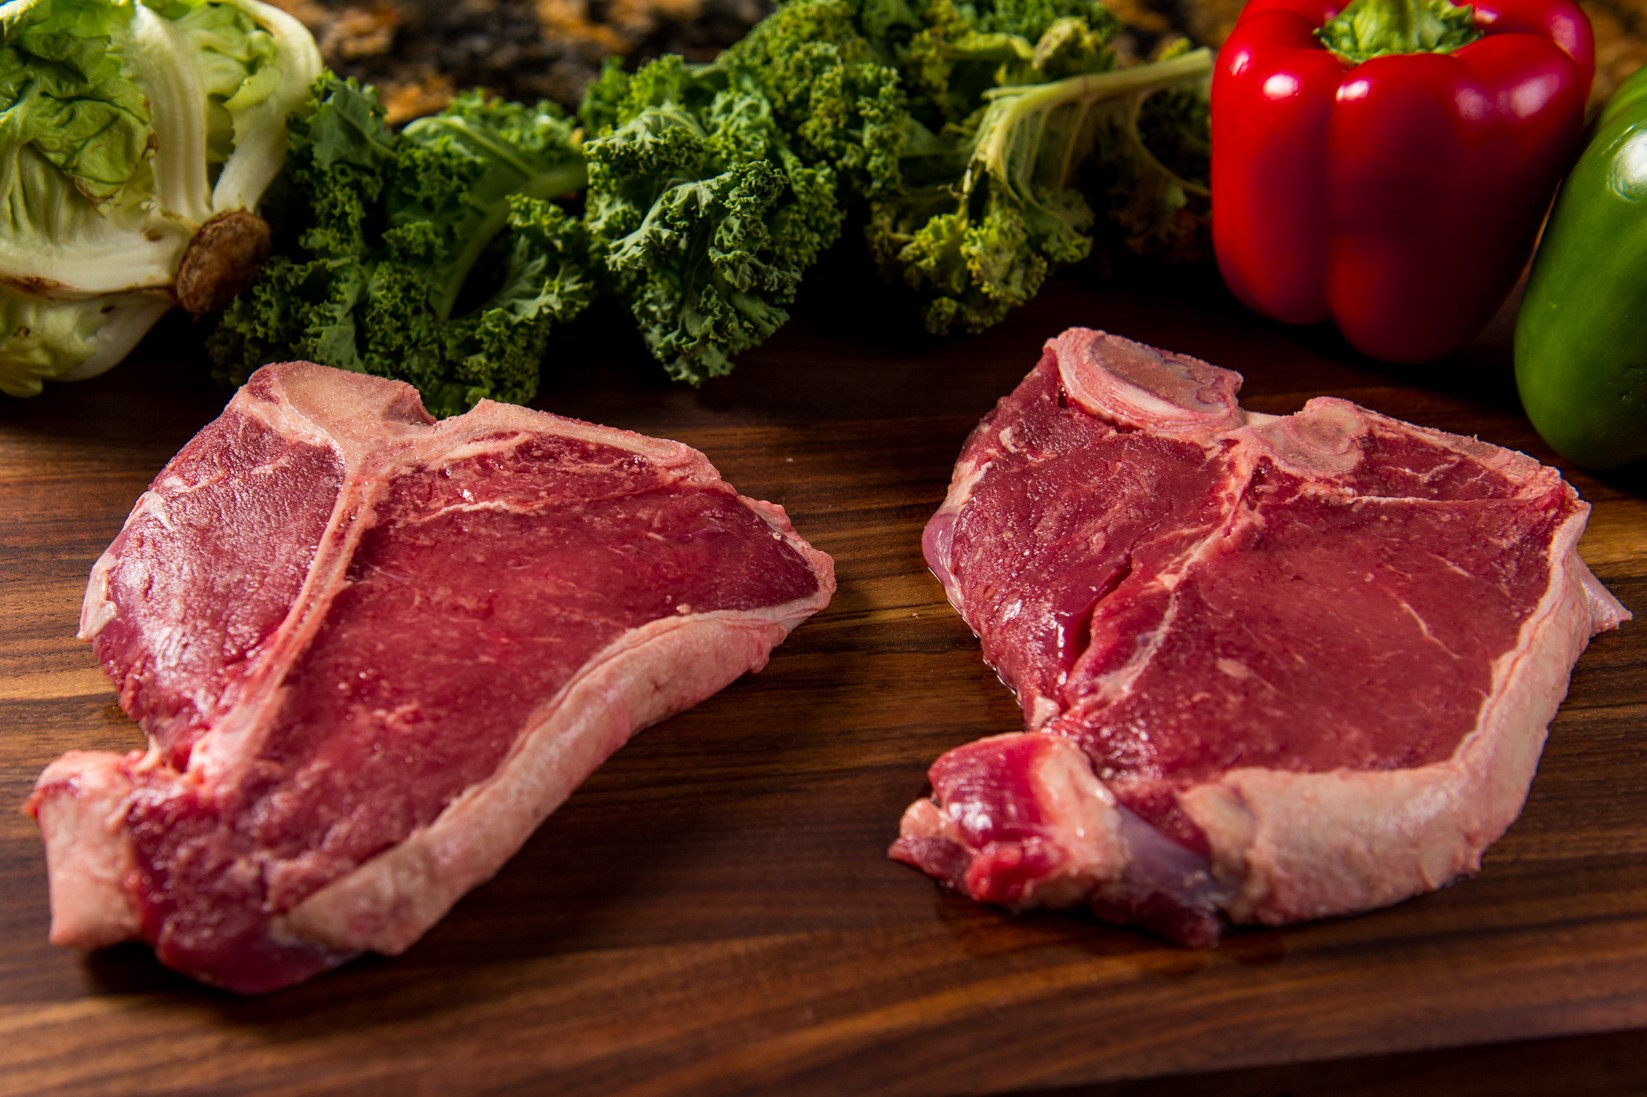 River Watch Beef Cuts - Porterhouse Steak - 2 Steaks - Close